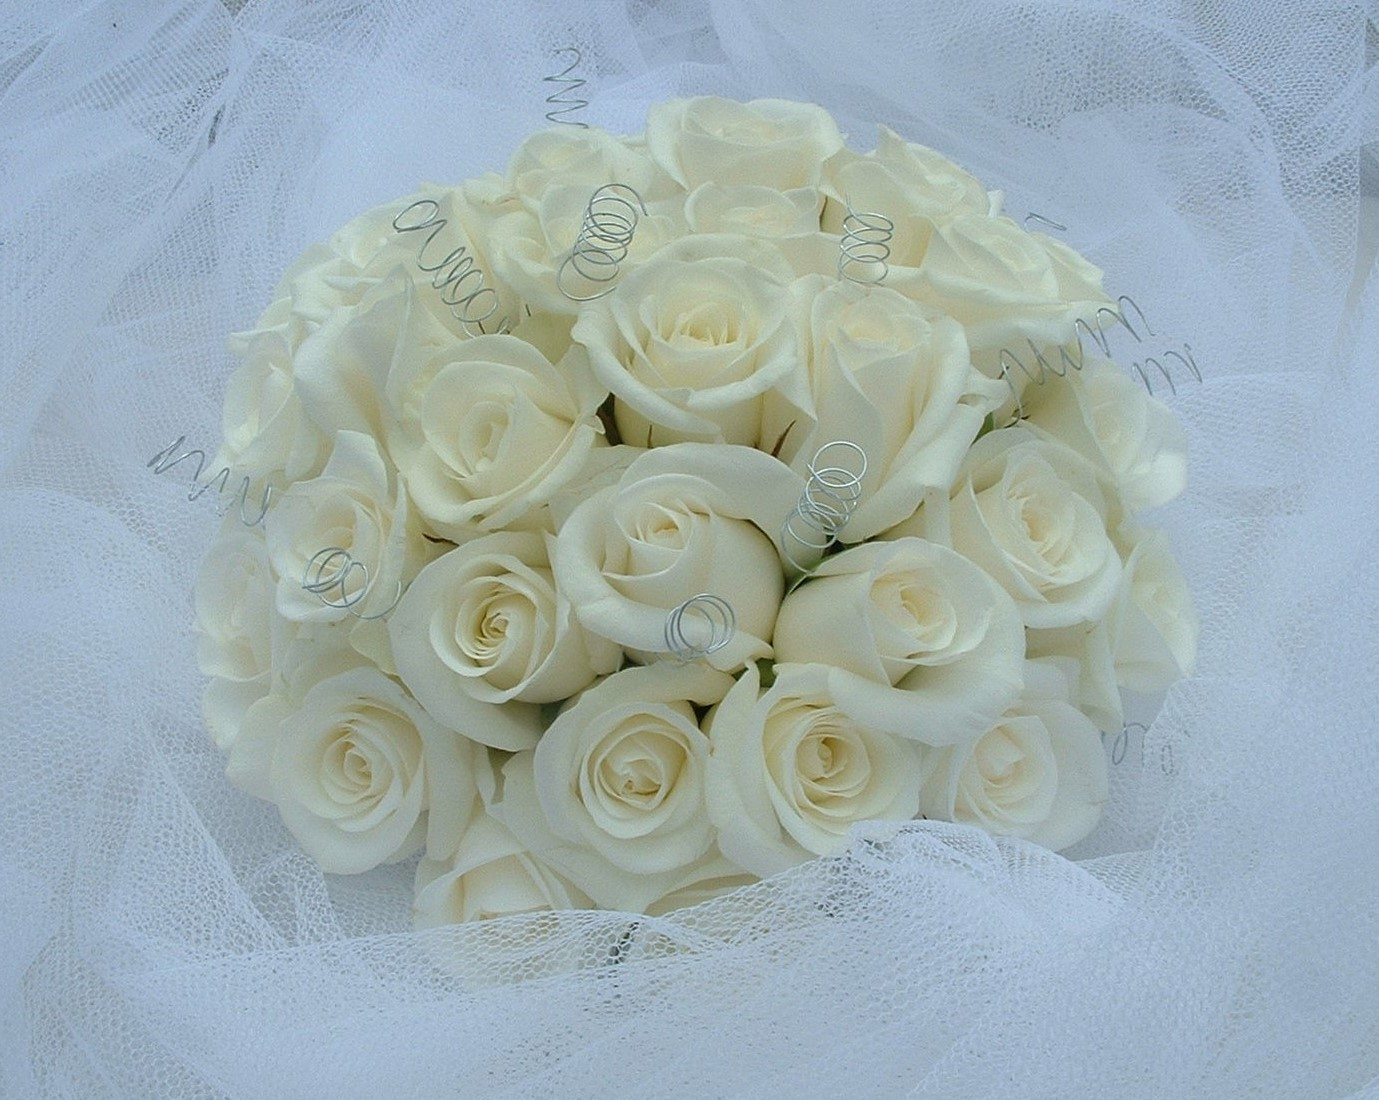 wedding flowers for bride in a hand tied style just roses with silver springs